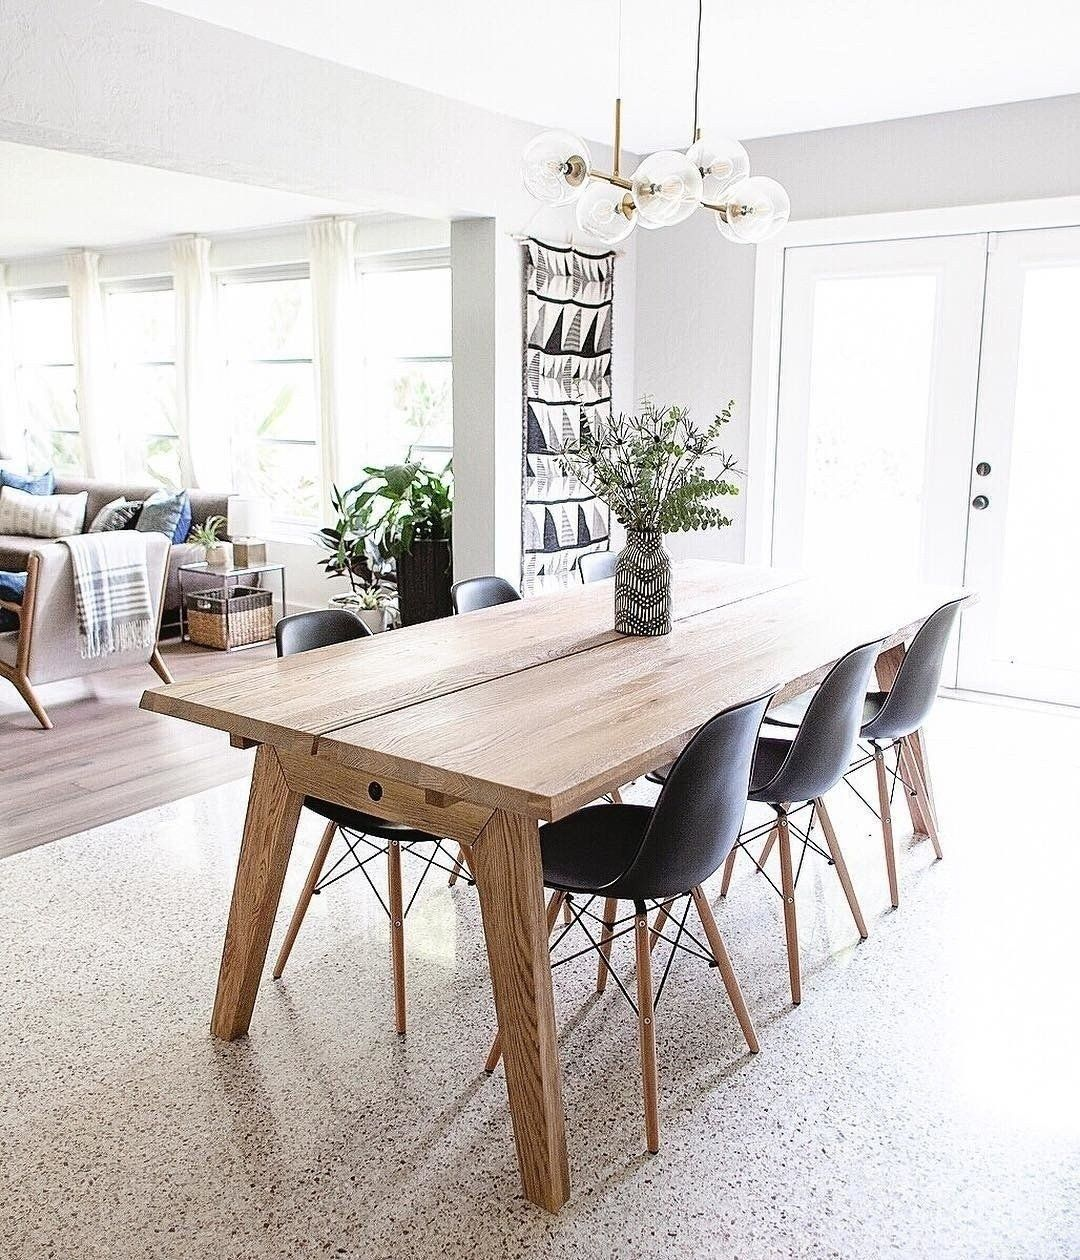 48 Fabulous Scandinavian Dining Room Design Ideas That Looks Cool In 2020 Dining Room Small Oak Dining Table Modern Dining Table